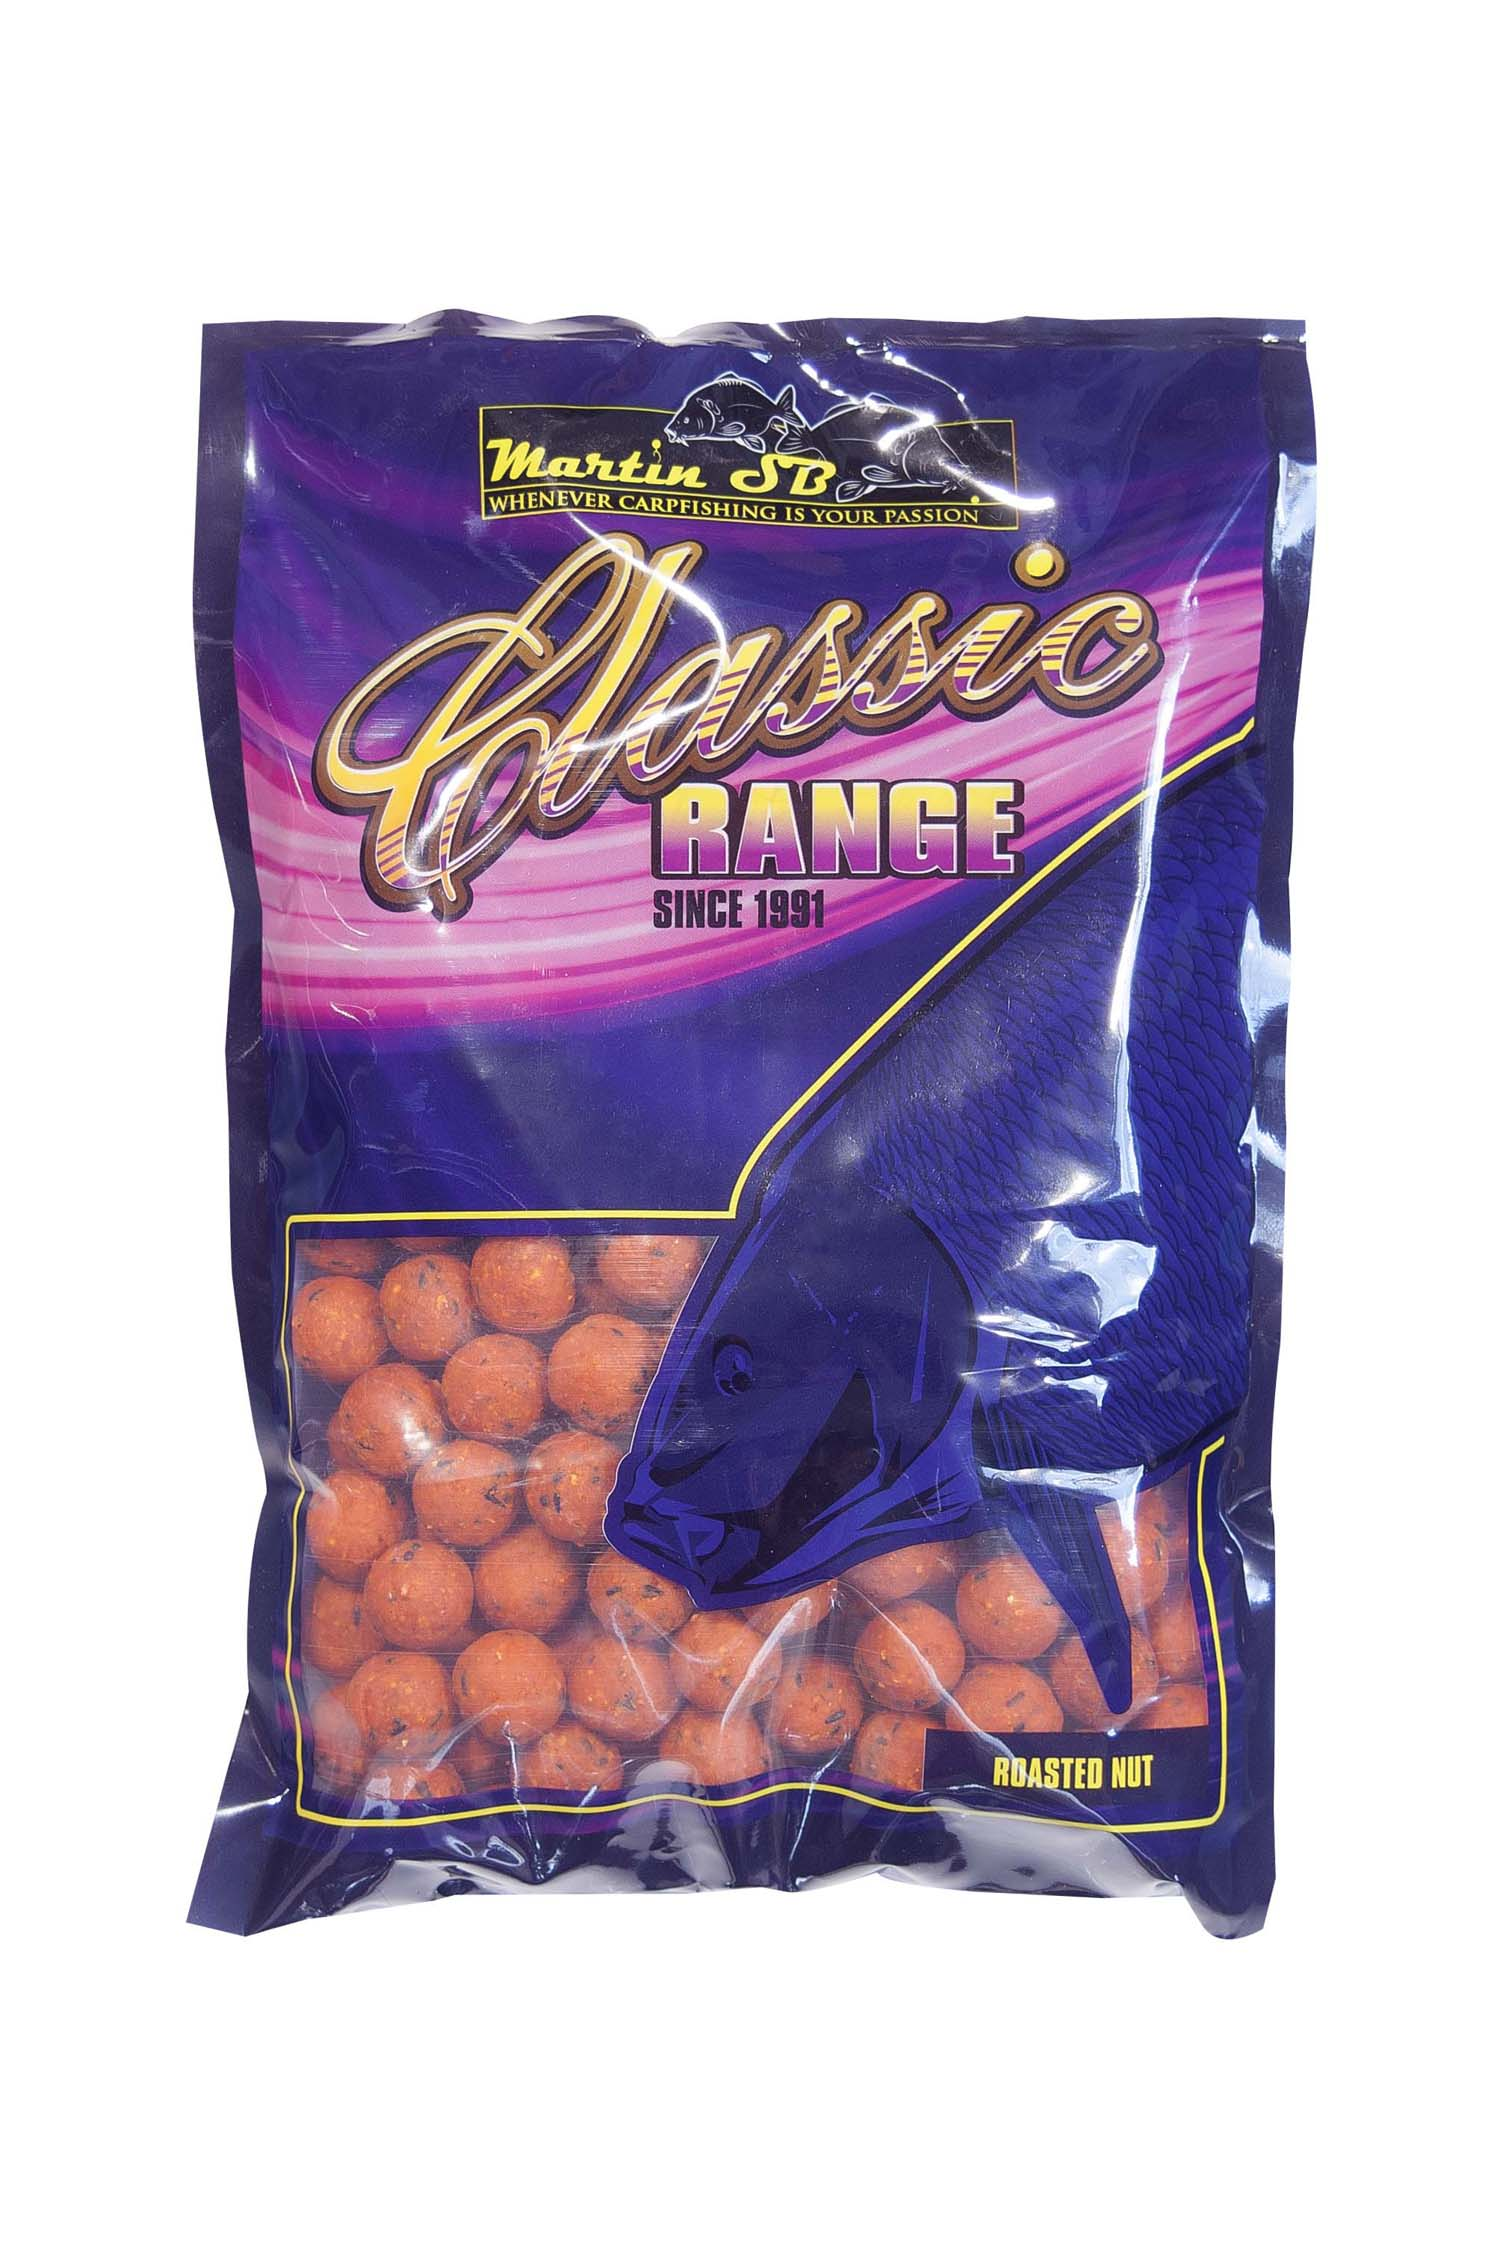 Classic Range – Roasted Nut